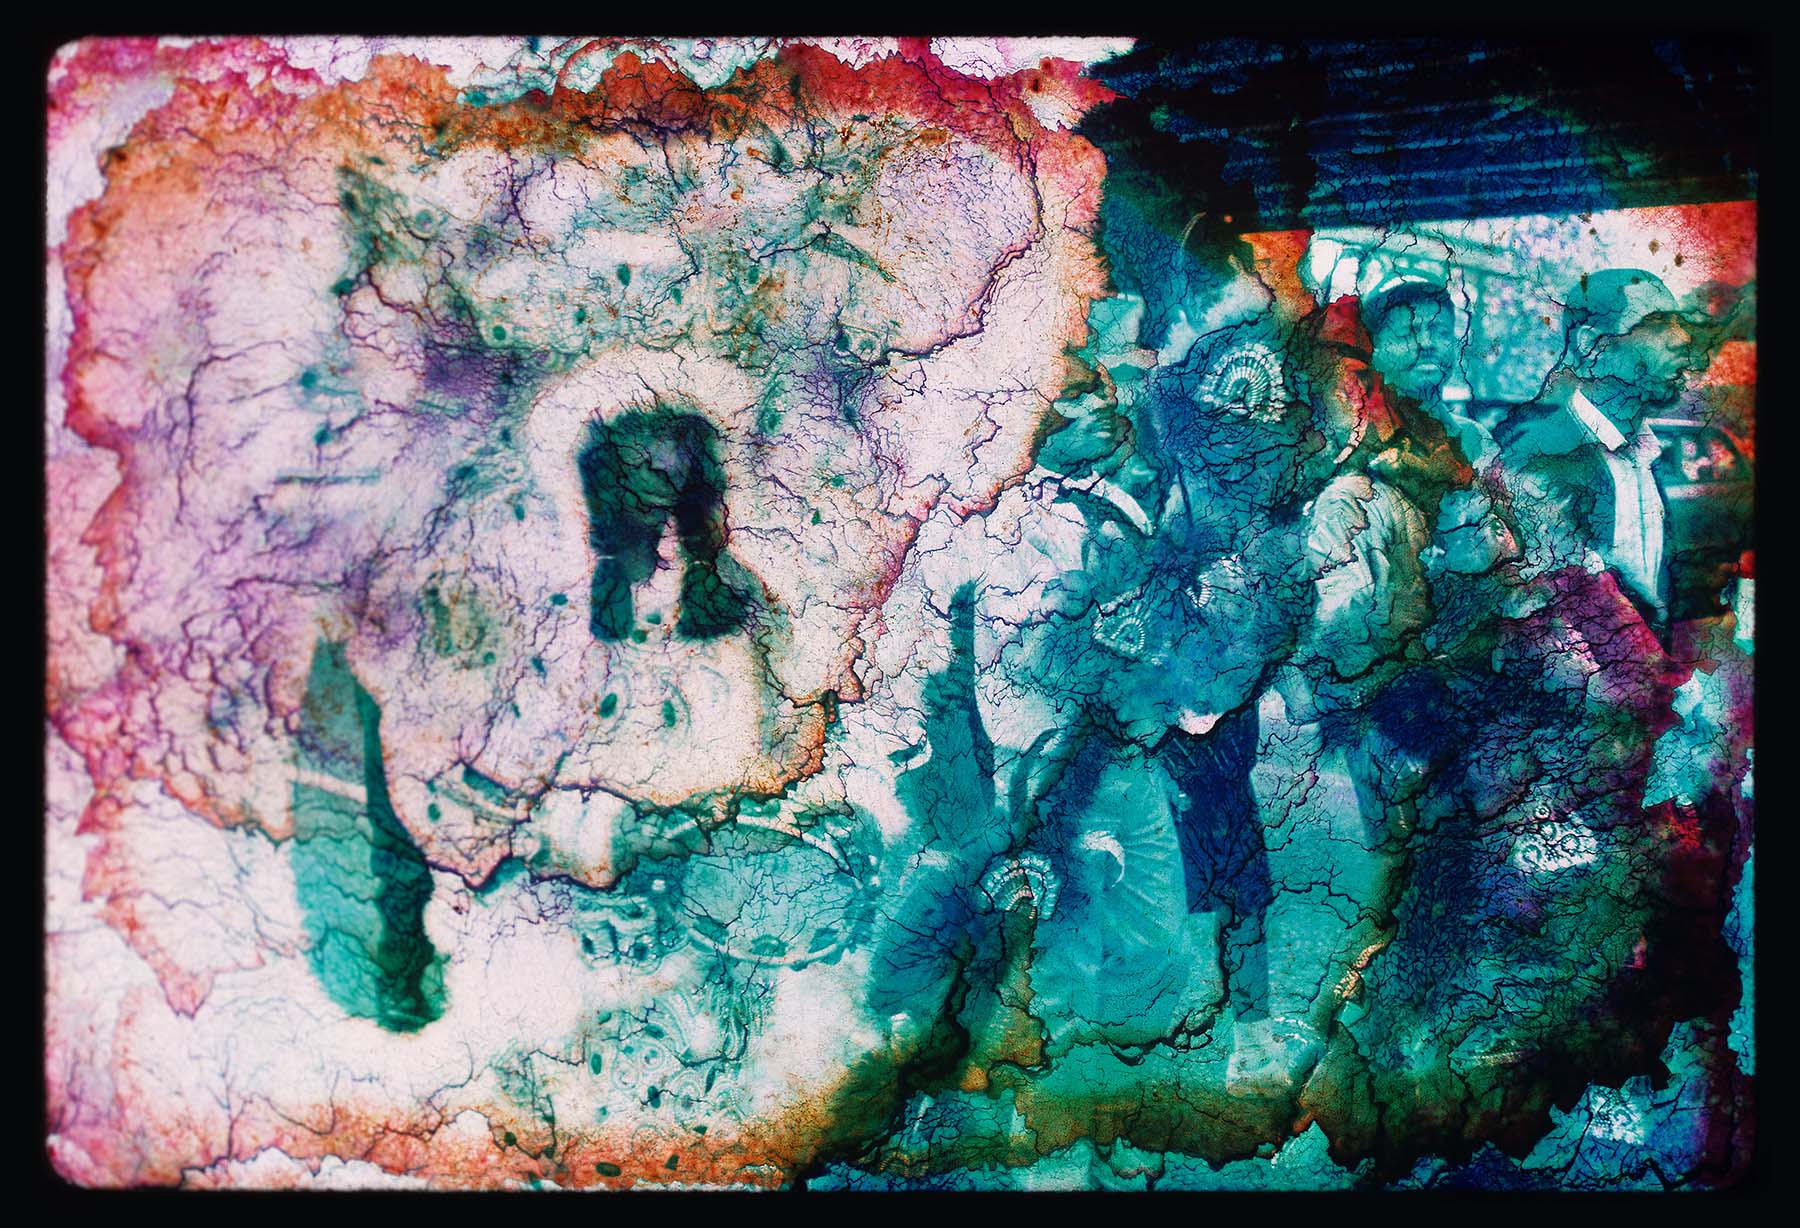 Image with water damage that has created an abstraction of the original photo of New Orleans people in costume.